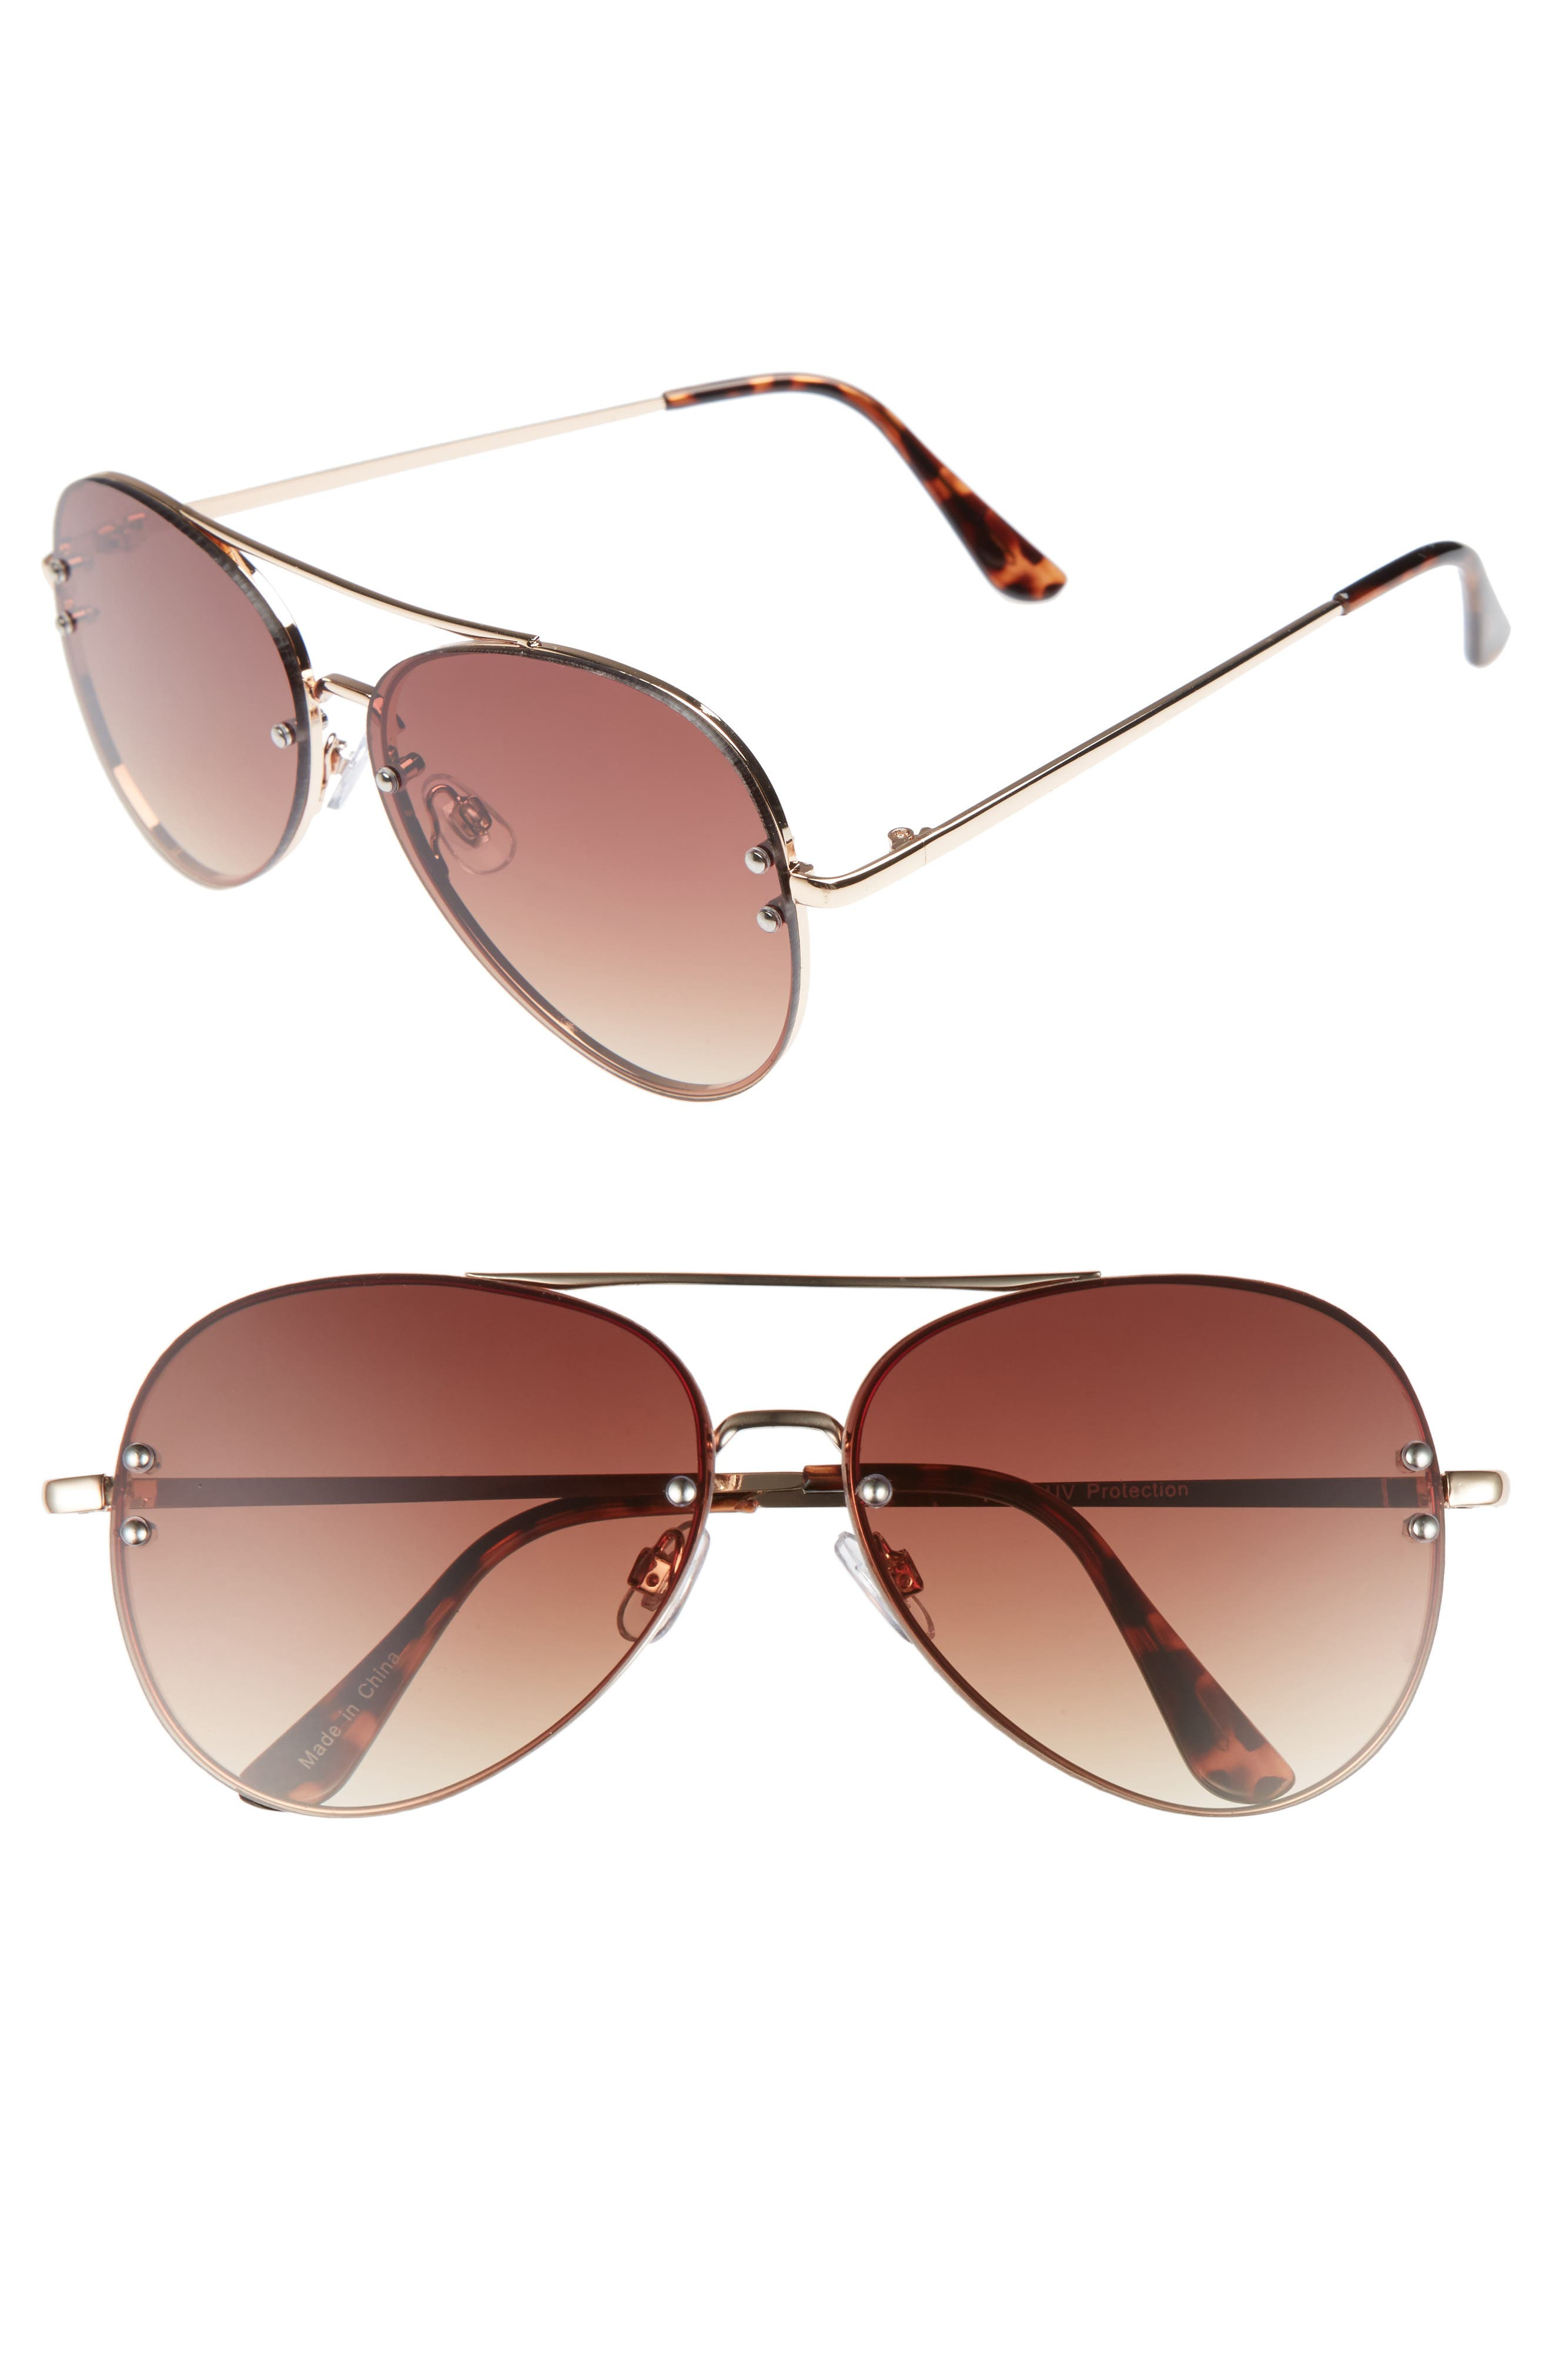 60mm Oversize Mirrored Aviator Sunglasses,                         Main,                         color, GOLD/ BROWN